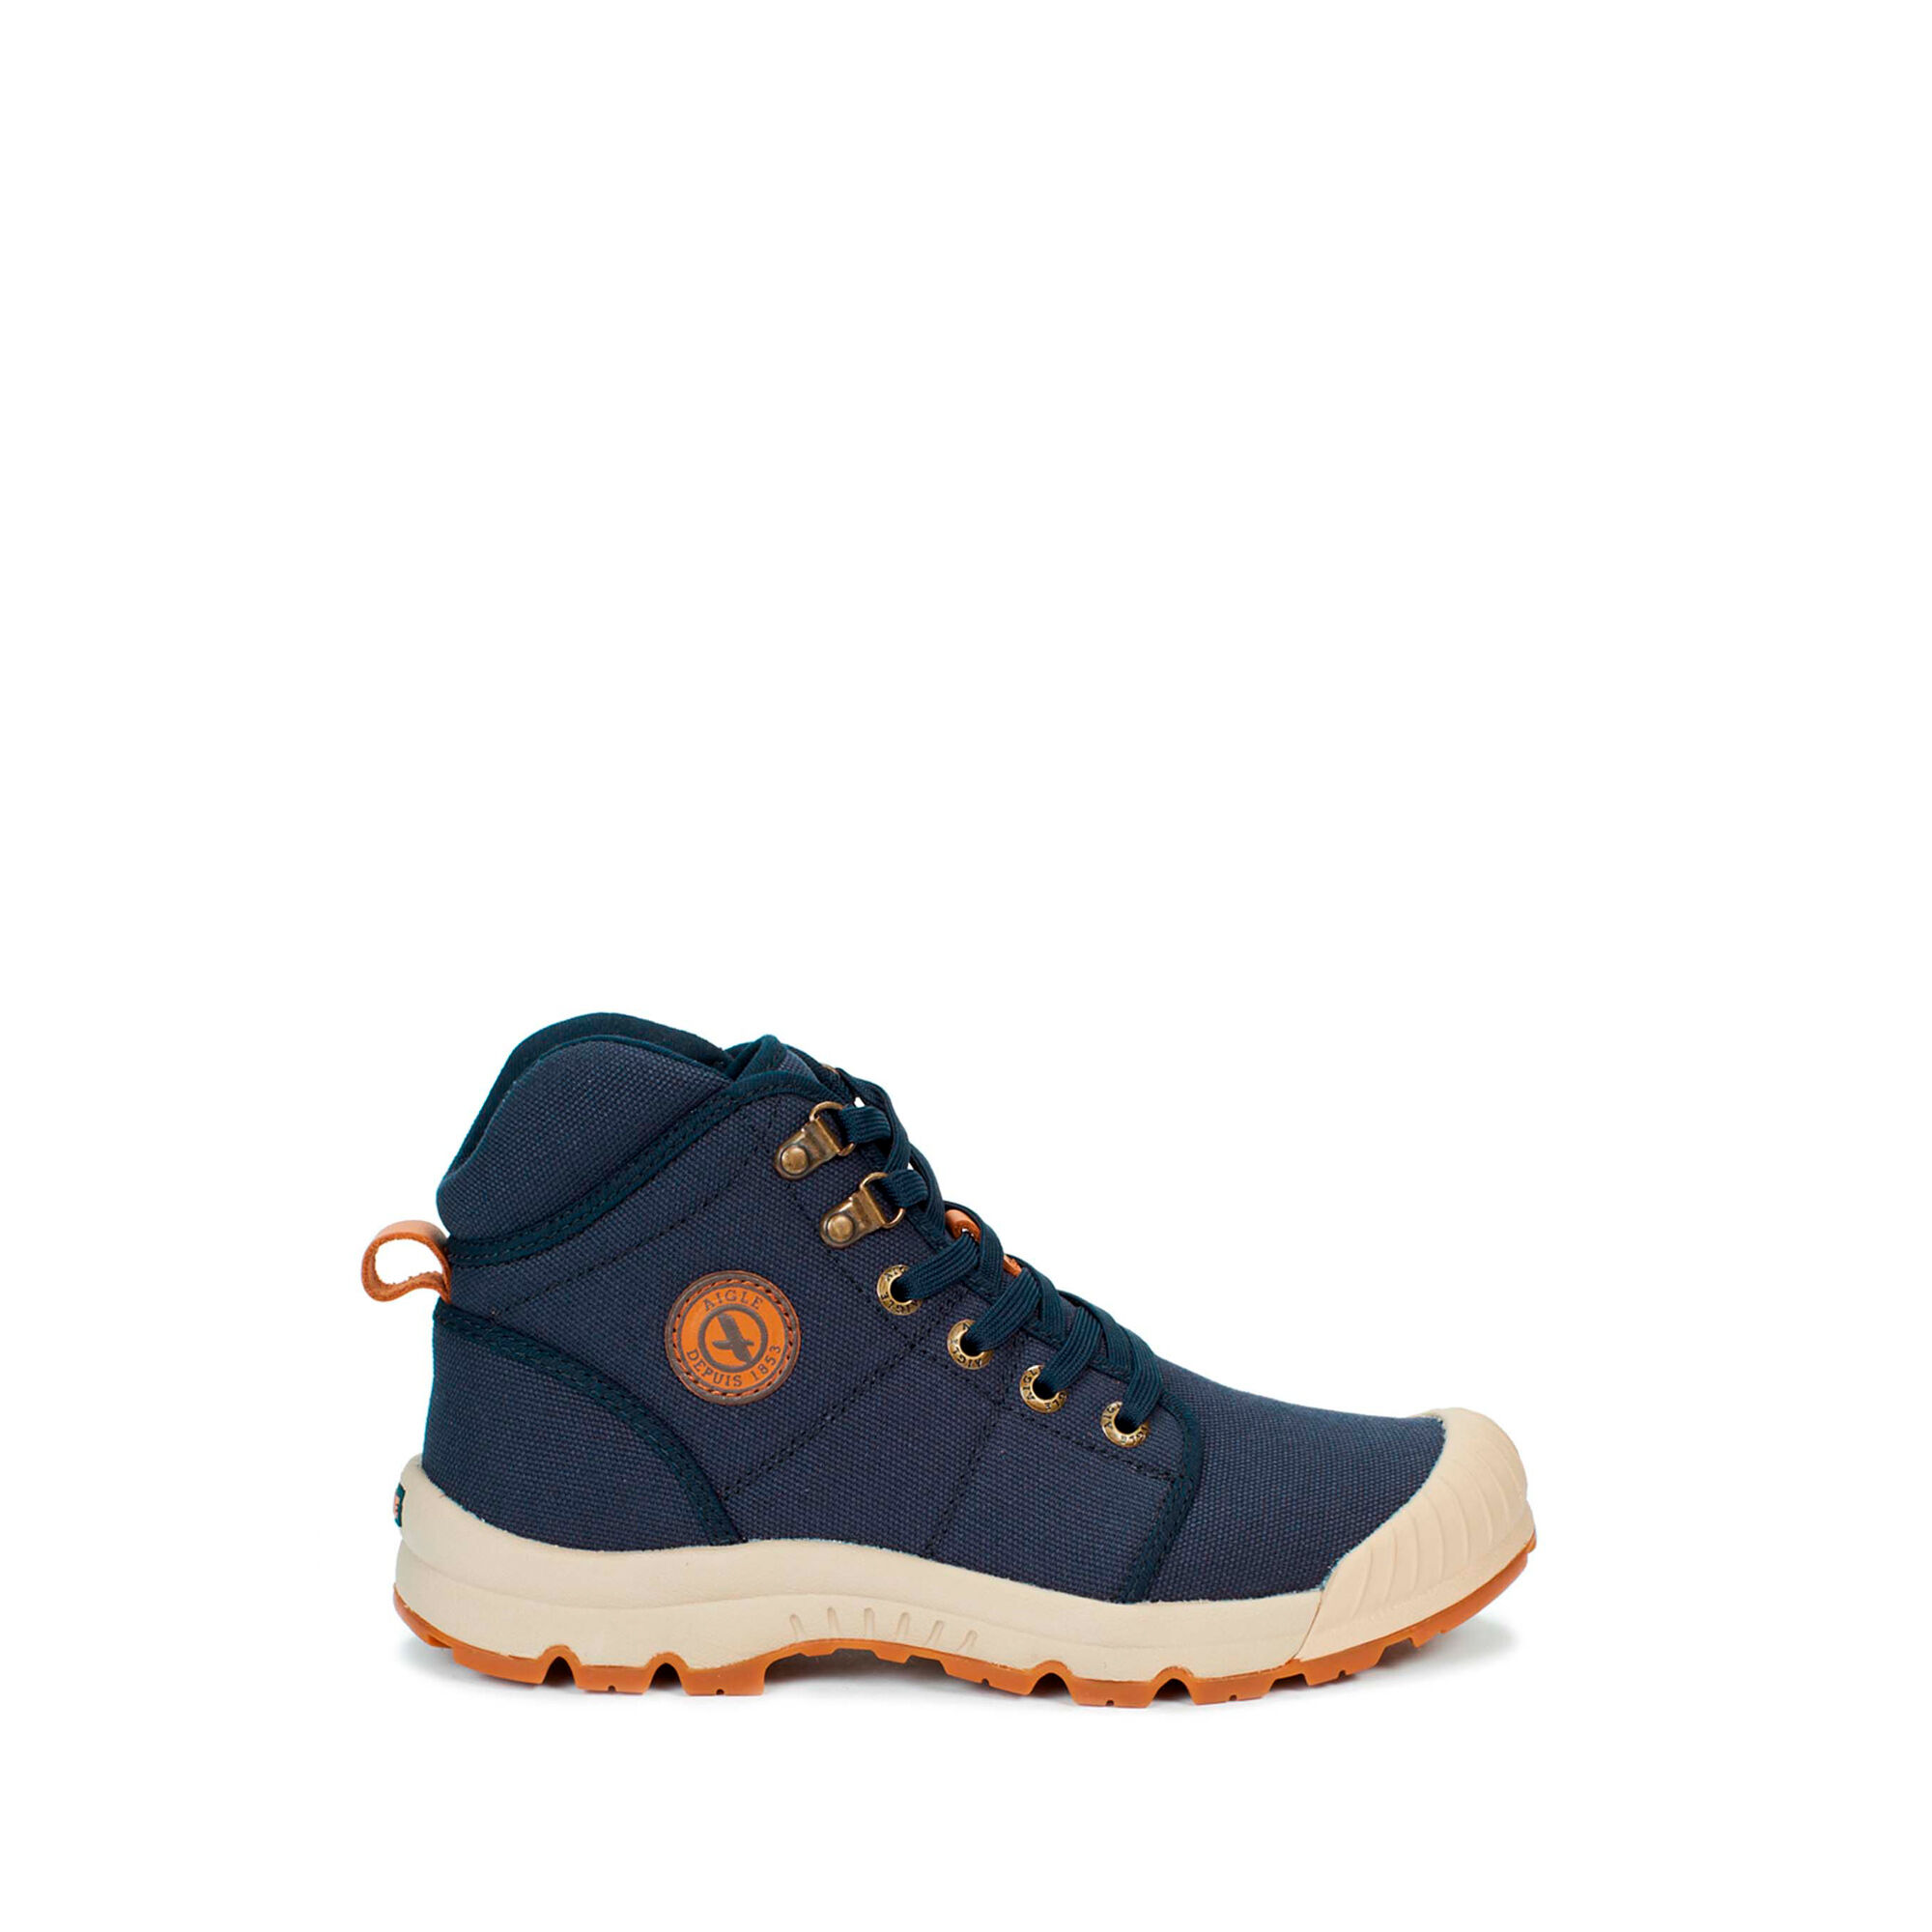 Chaussures bleues Casual fille K3Hnj8